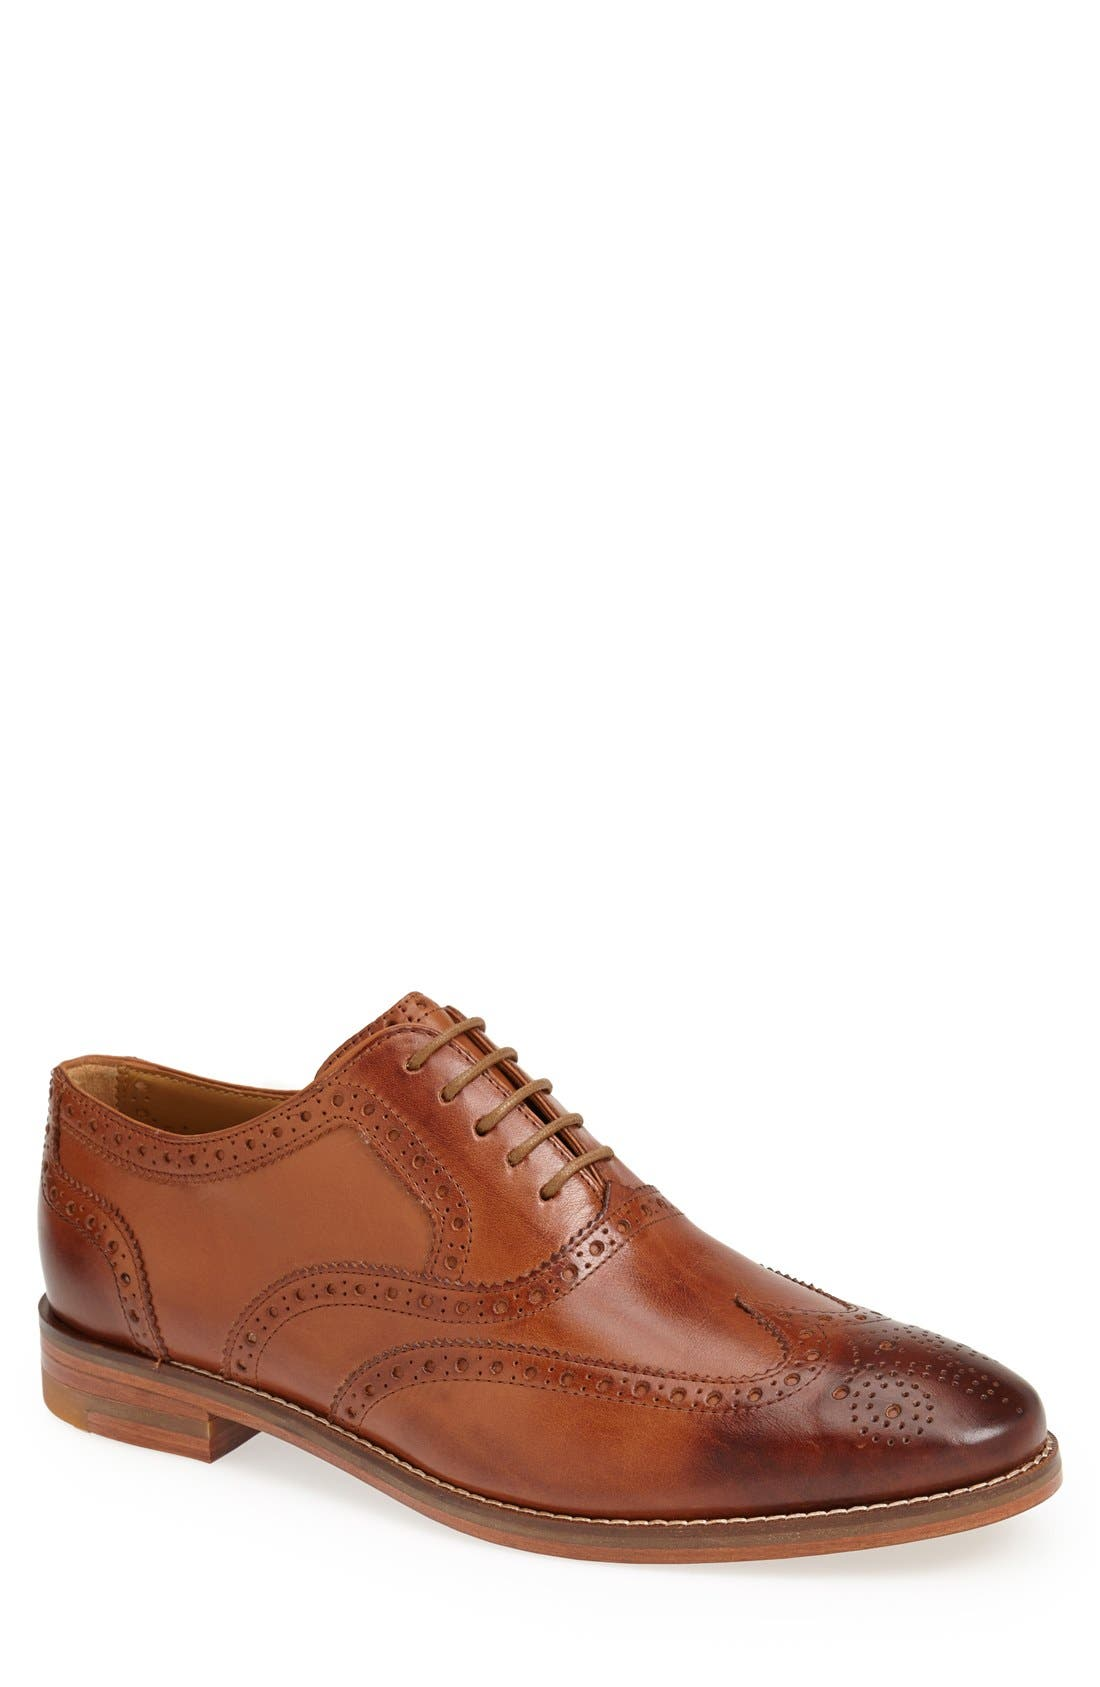 'Cambridge' Wingtip,                         Main,                         color, British Tan Leather